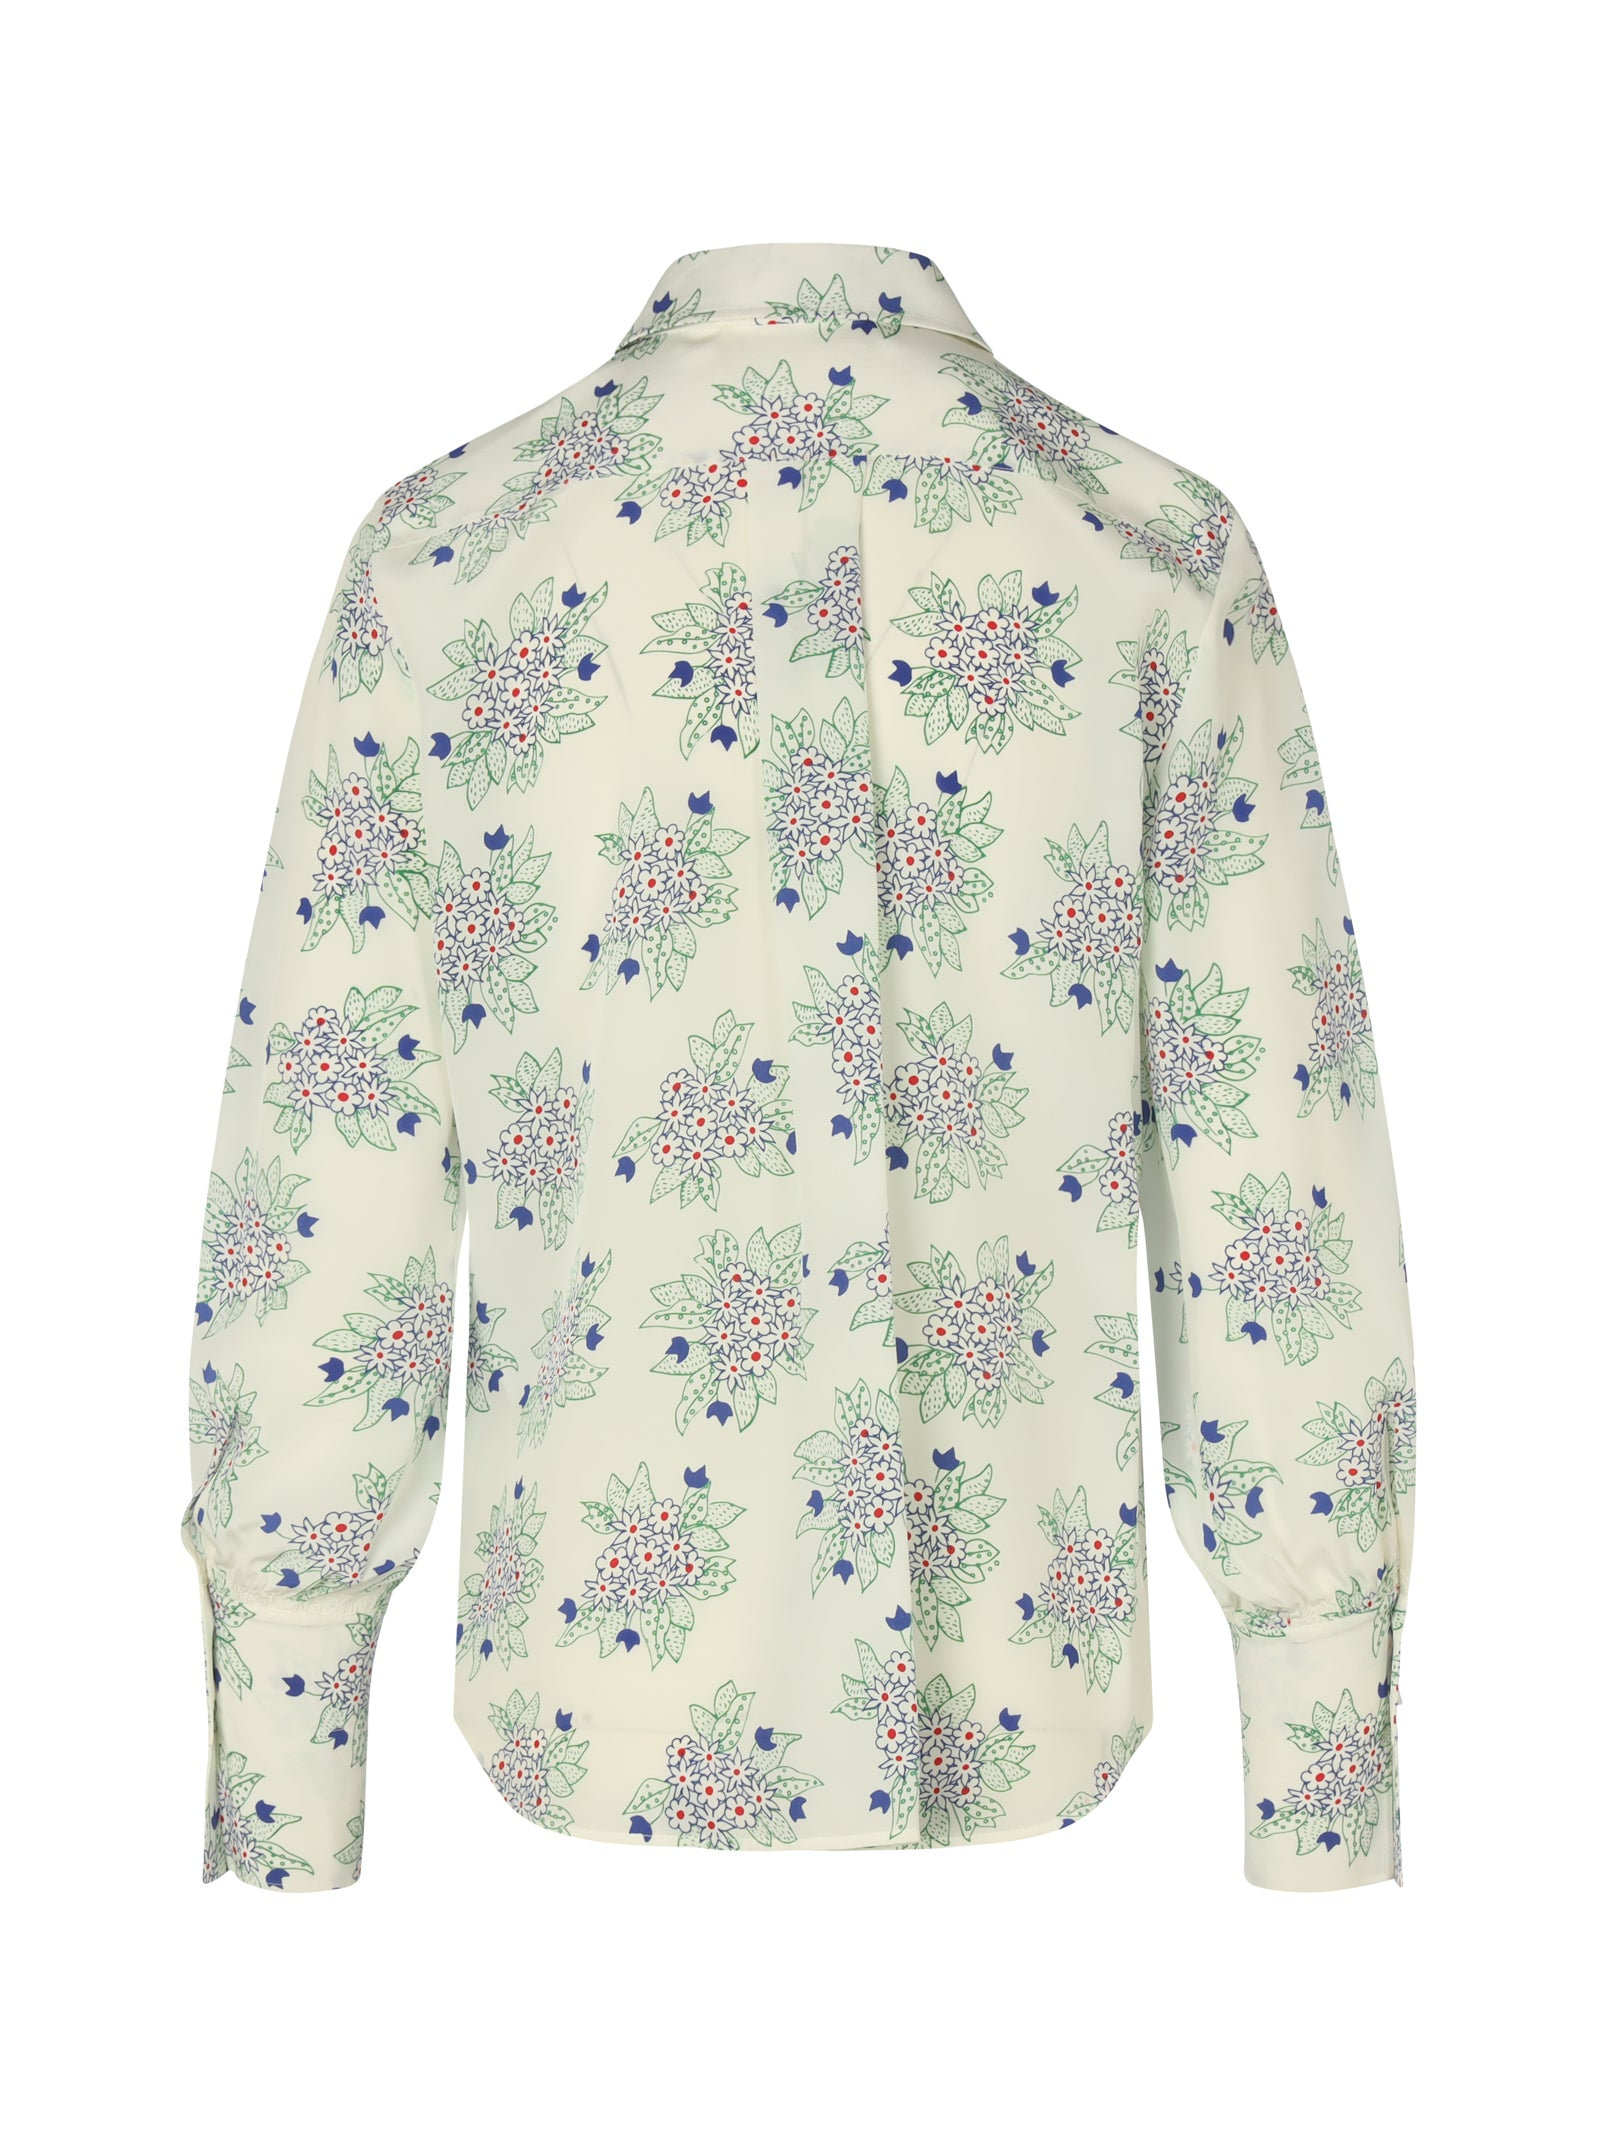 flowered shirt